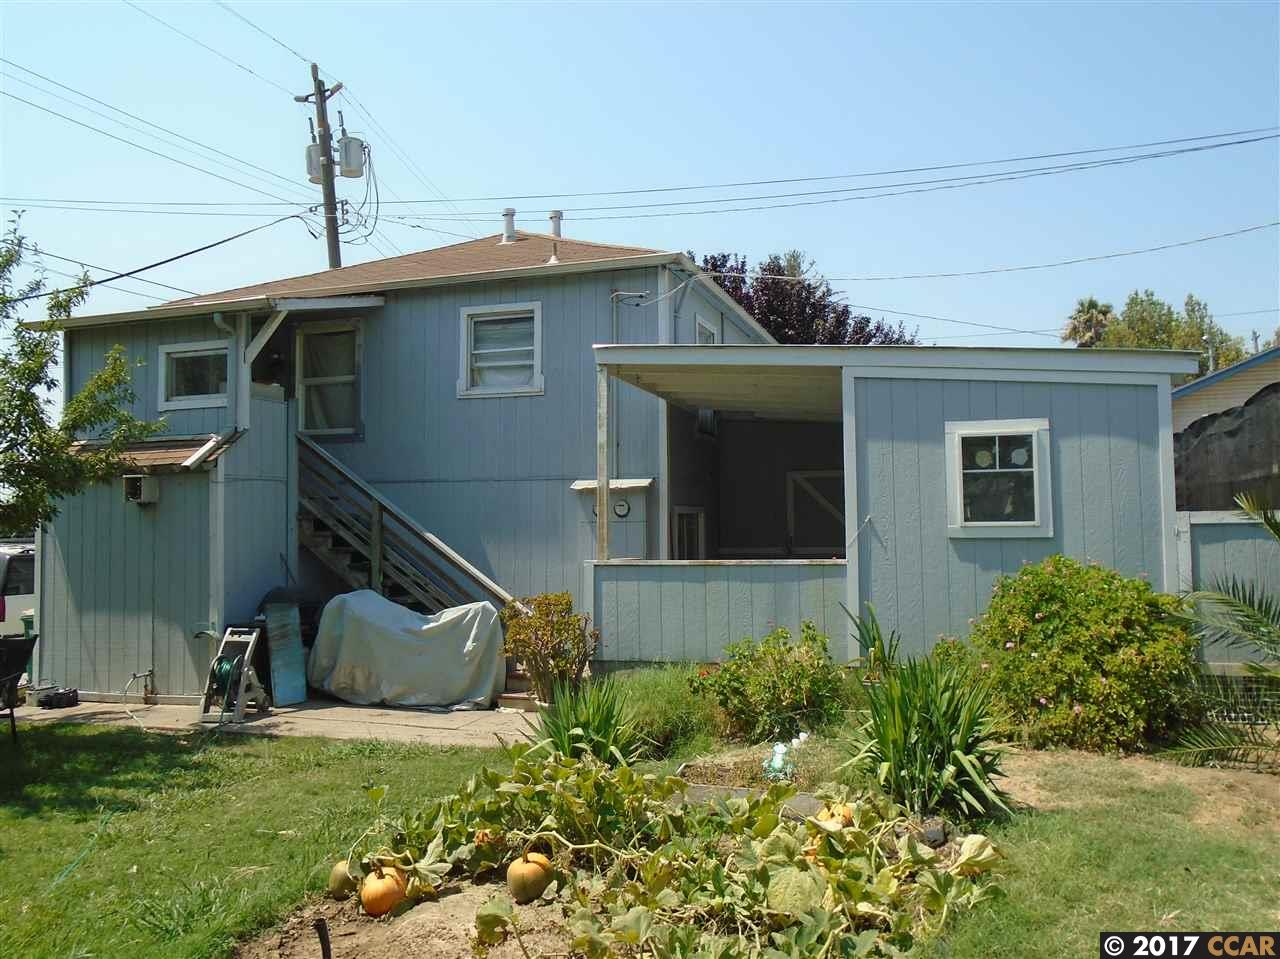 Multi-Family Home for Sale at 115 5Th Street 115 5Th Street Isleton, California 95641 United States